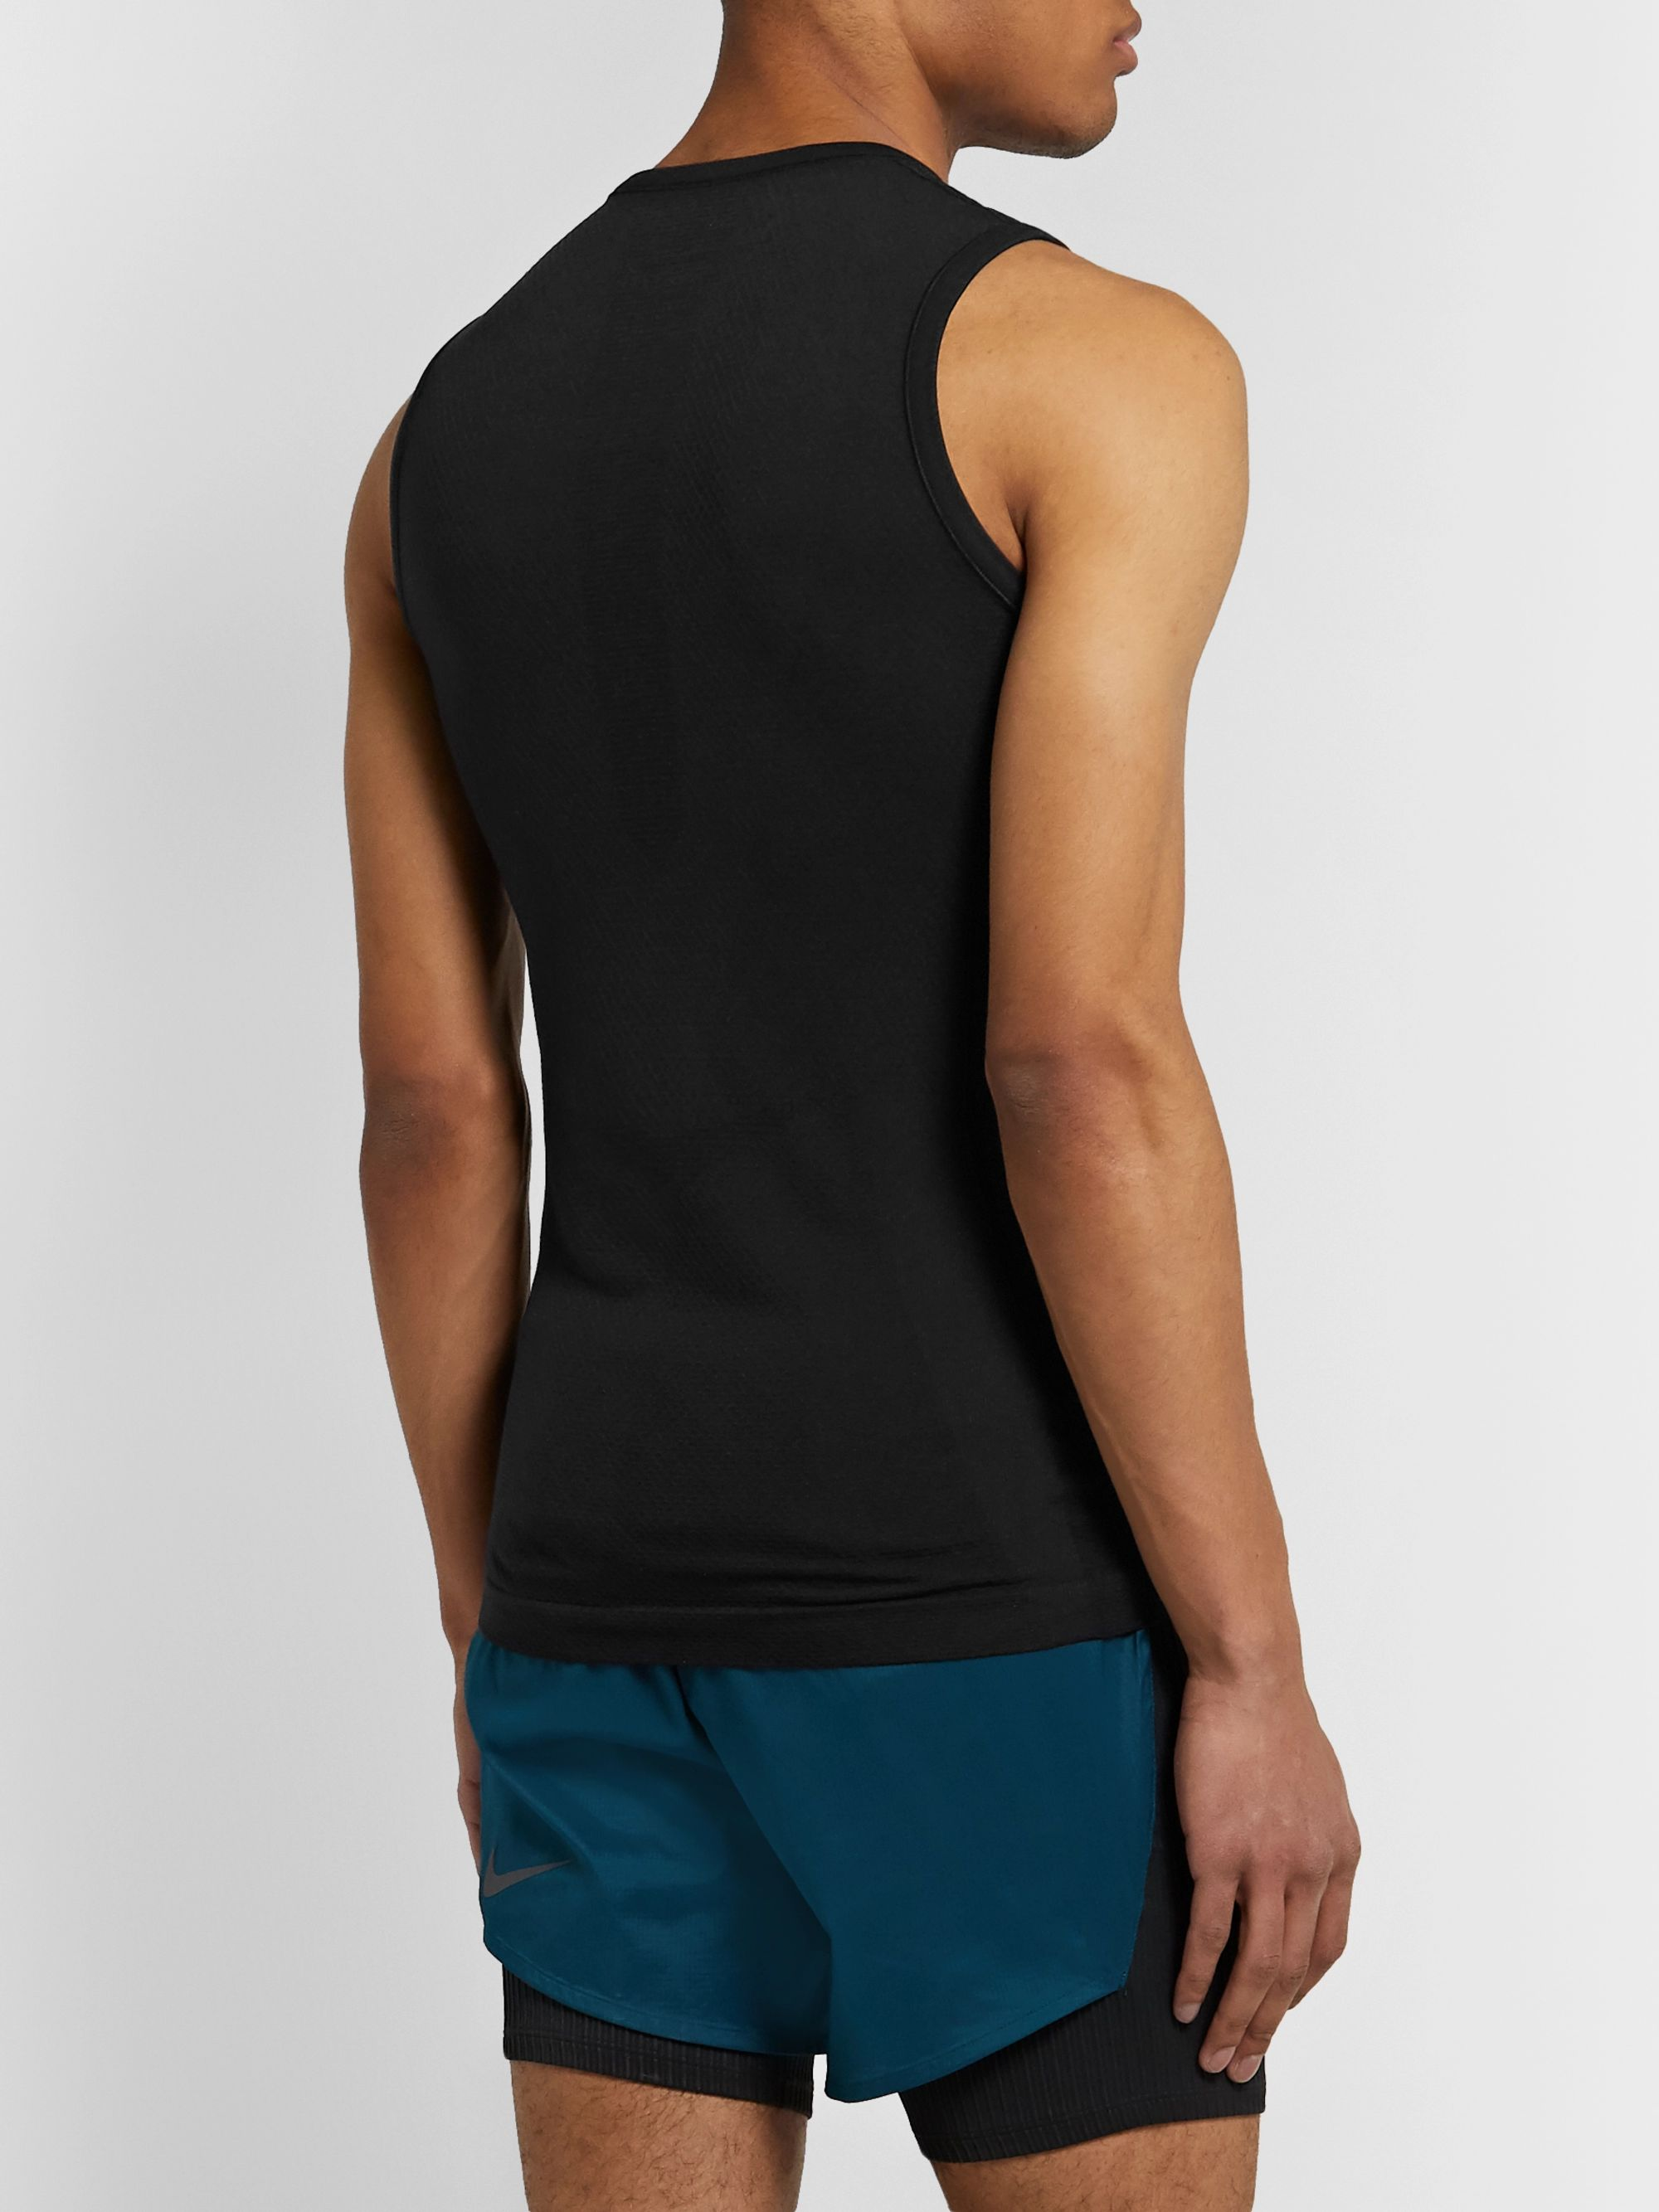 FALKE Ergonomic Sport System Cool Tech-Jersey Tank Top